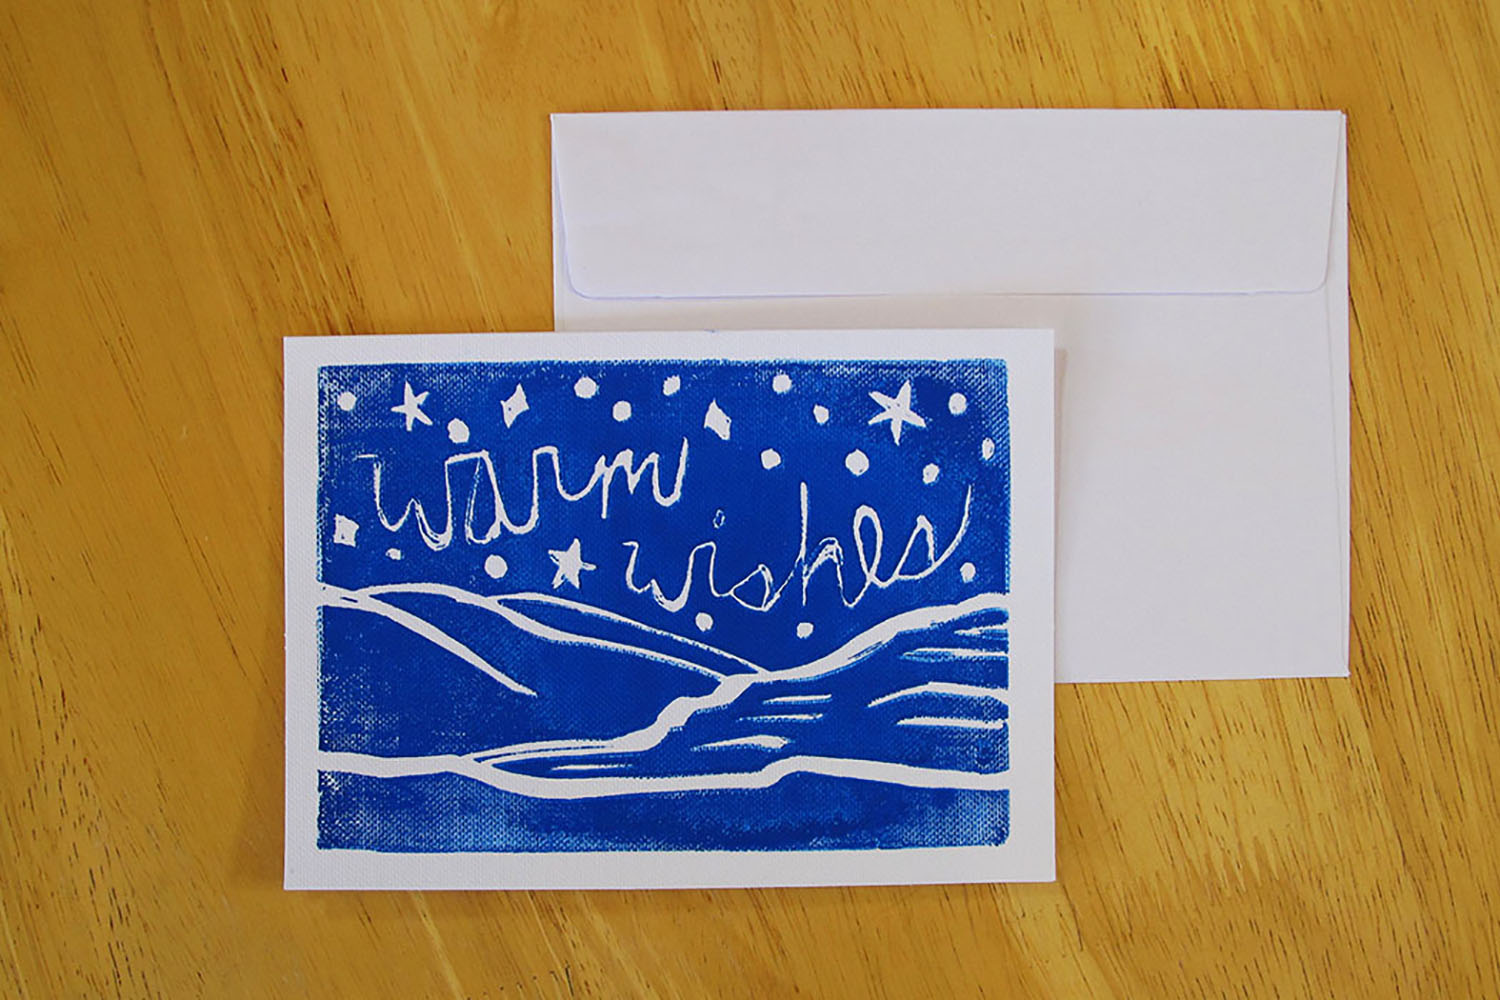 1_Warm Wishes Card.jpg